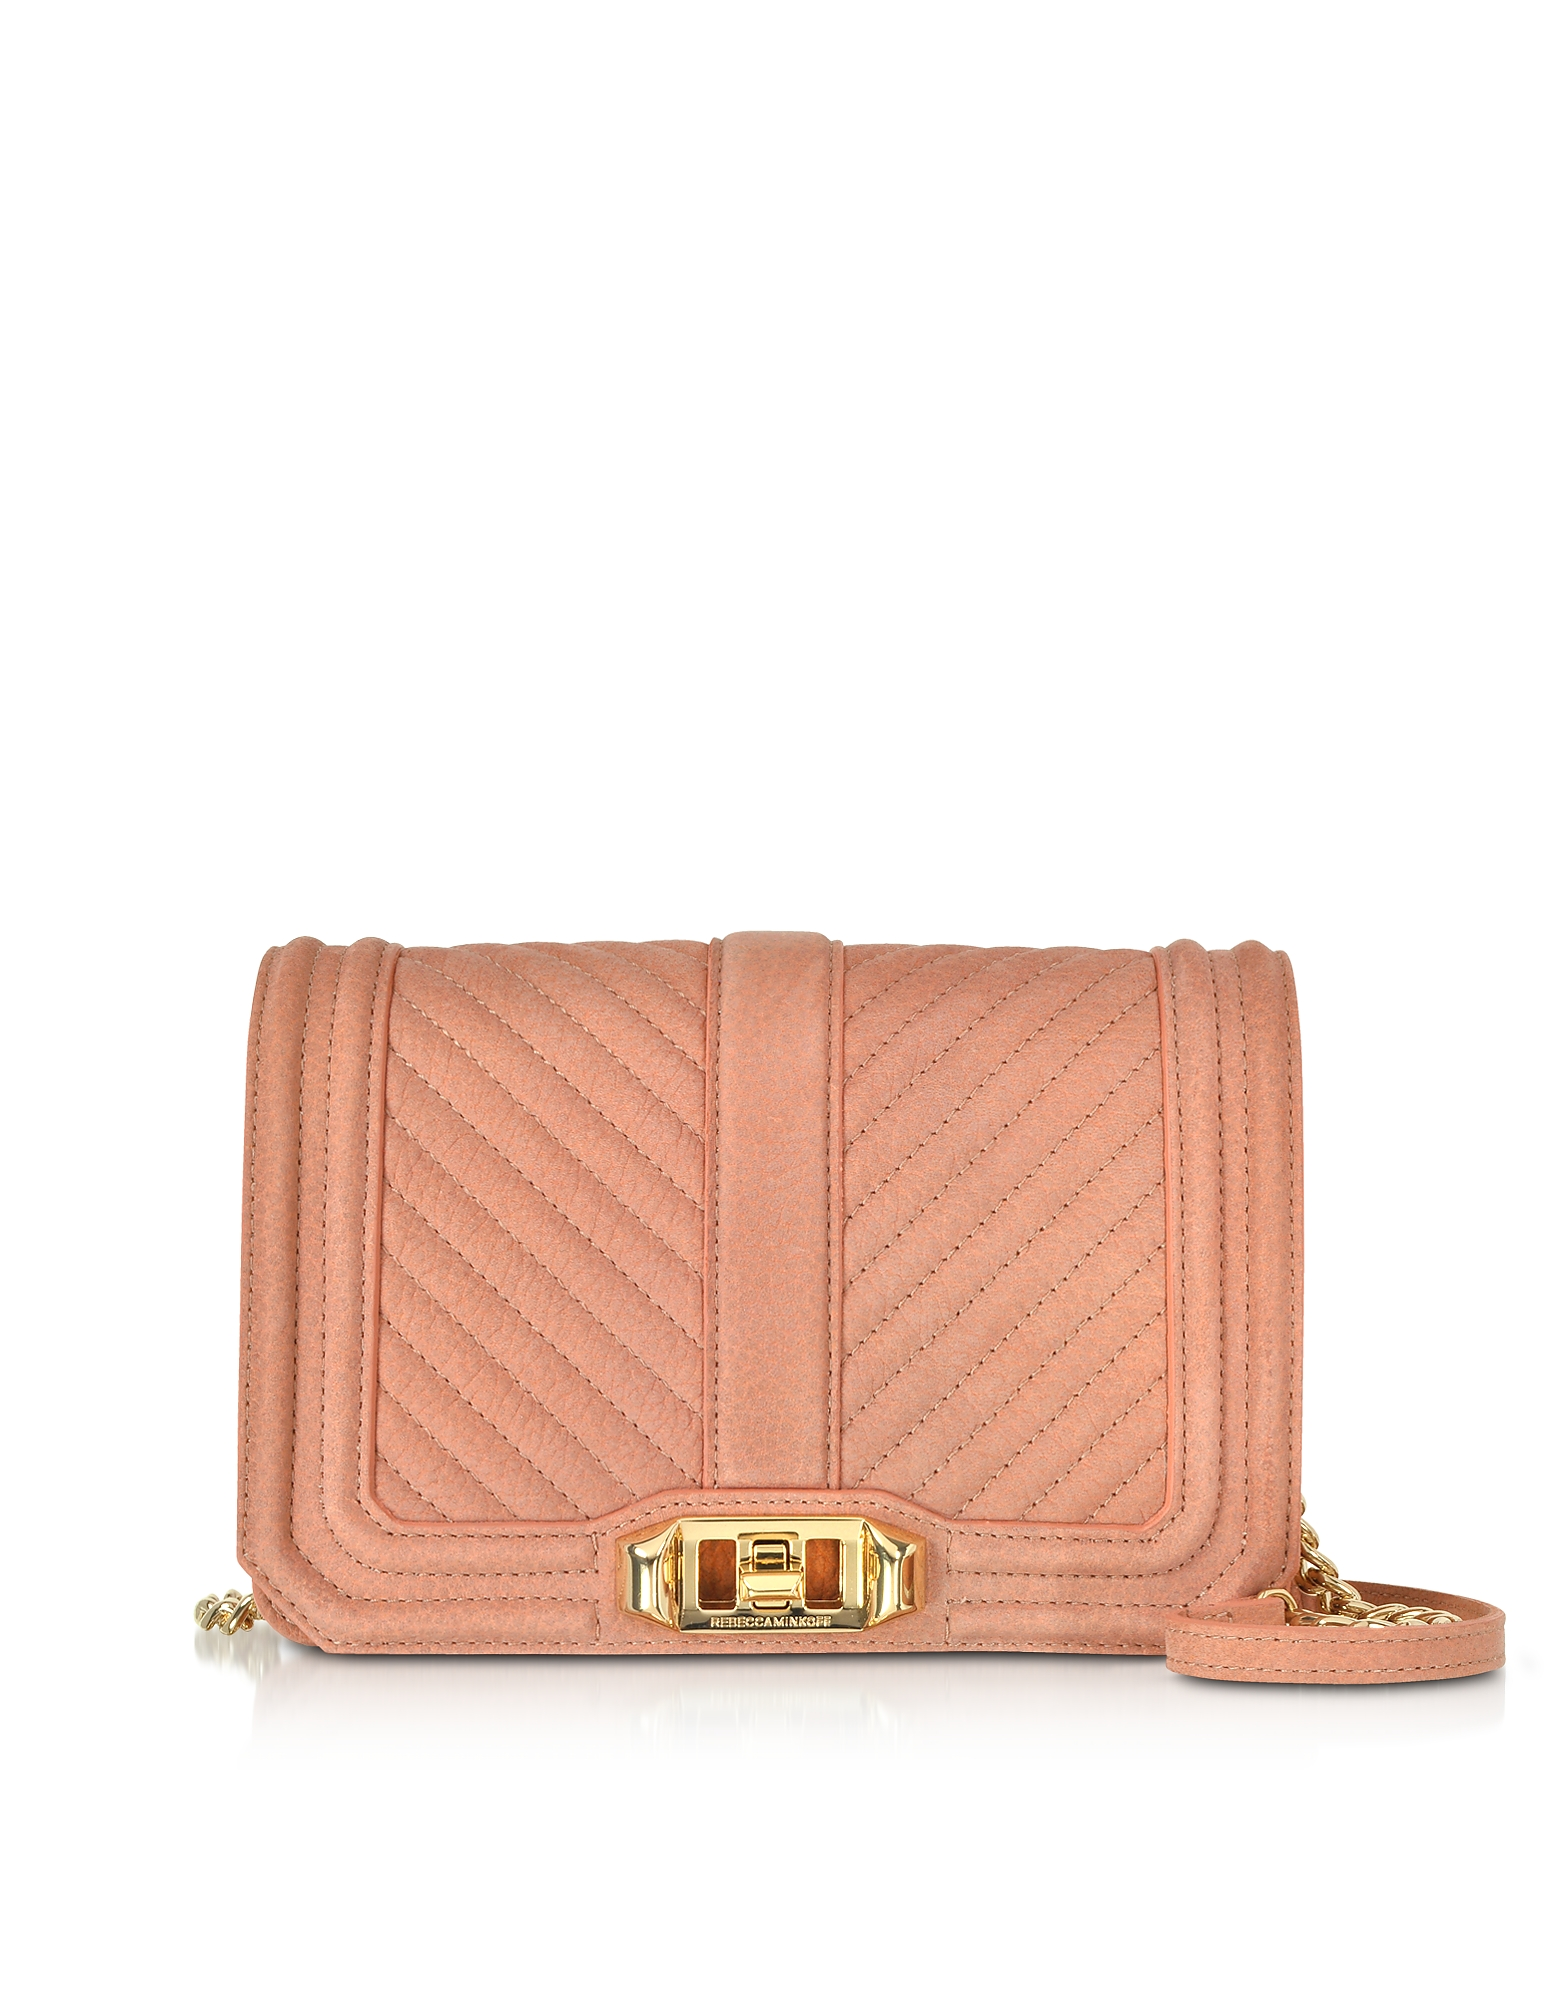 Small Dusty Peach Quilted Leather Love Crossbody Bag